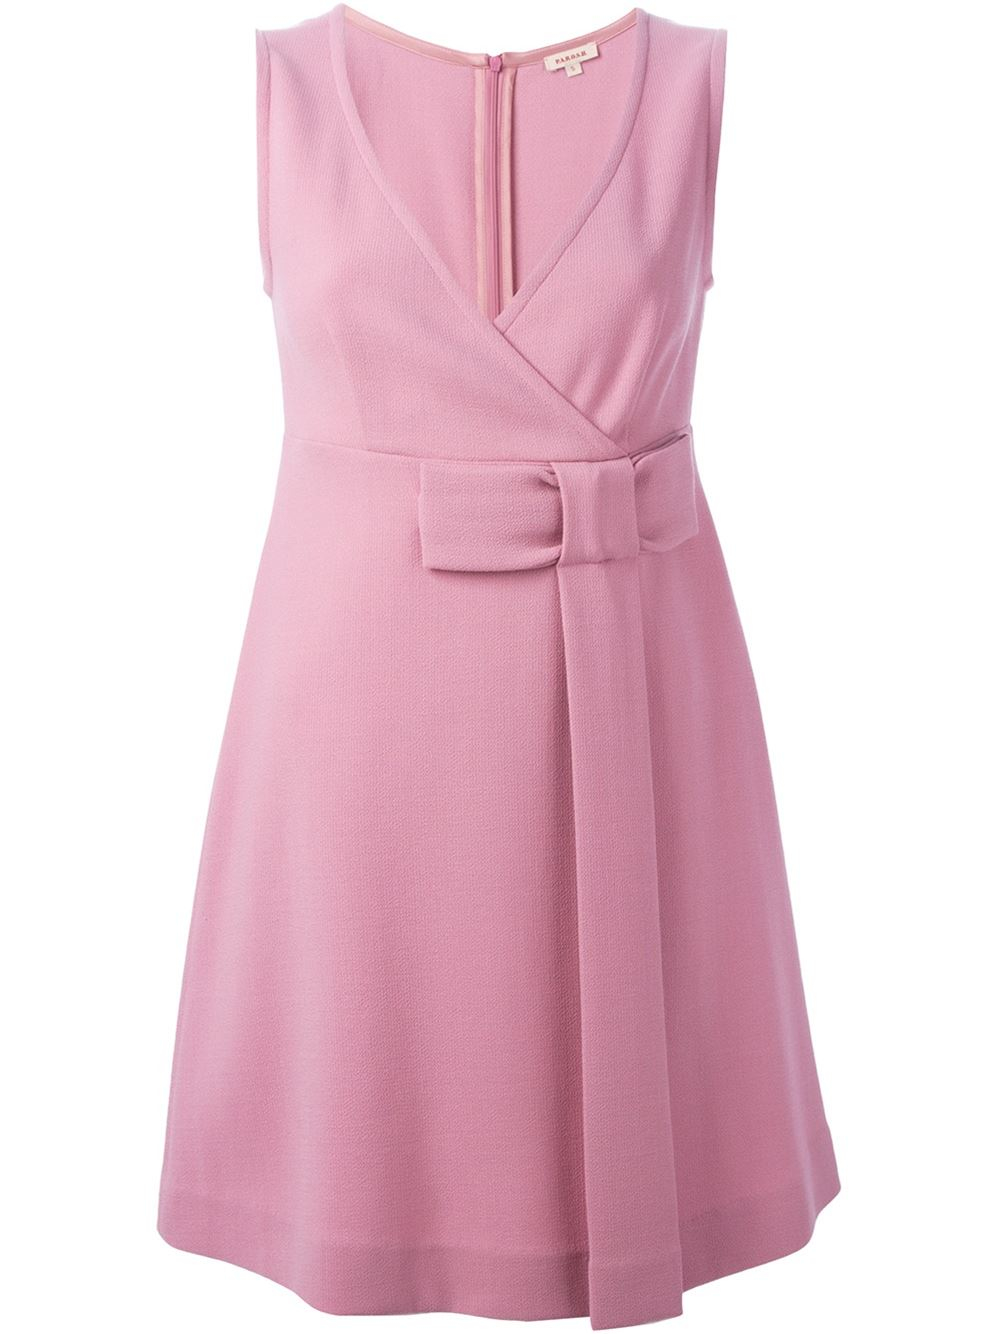 P a r o s h 39 lakix 39 dress in pink pink purple lyst Pink fashion and style pink dress